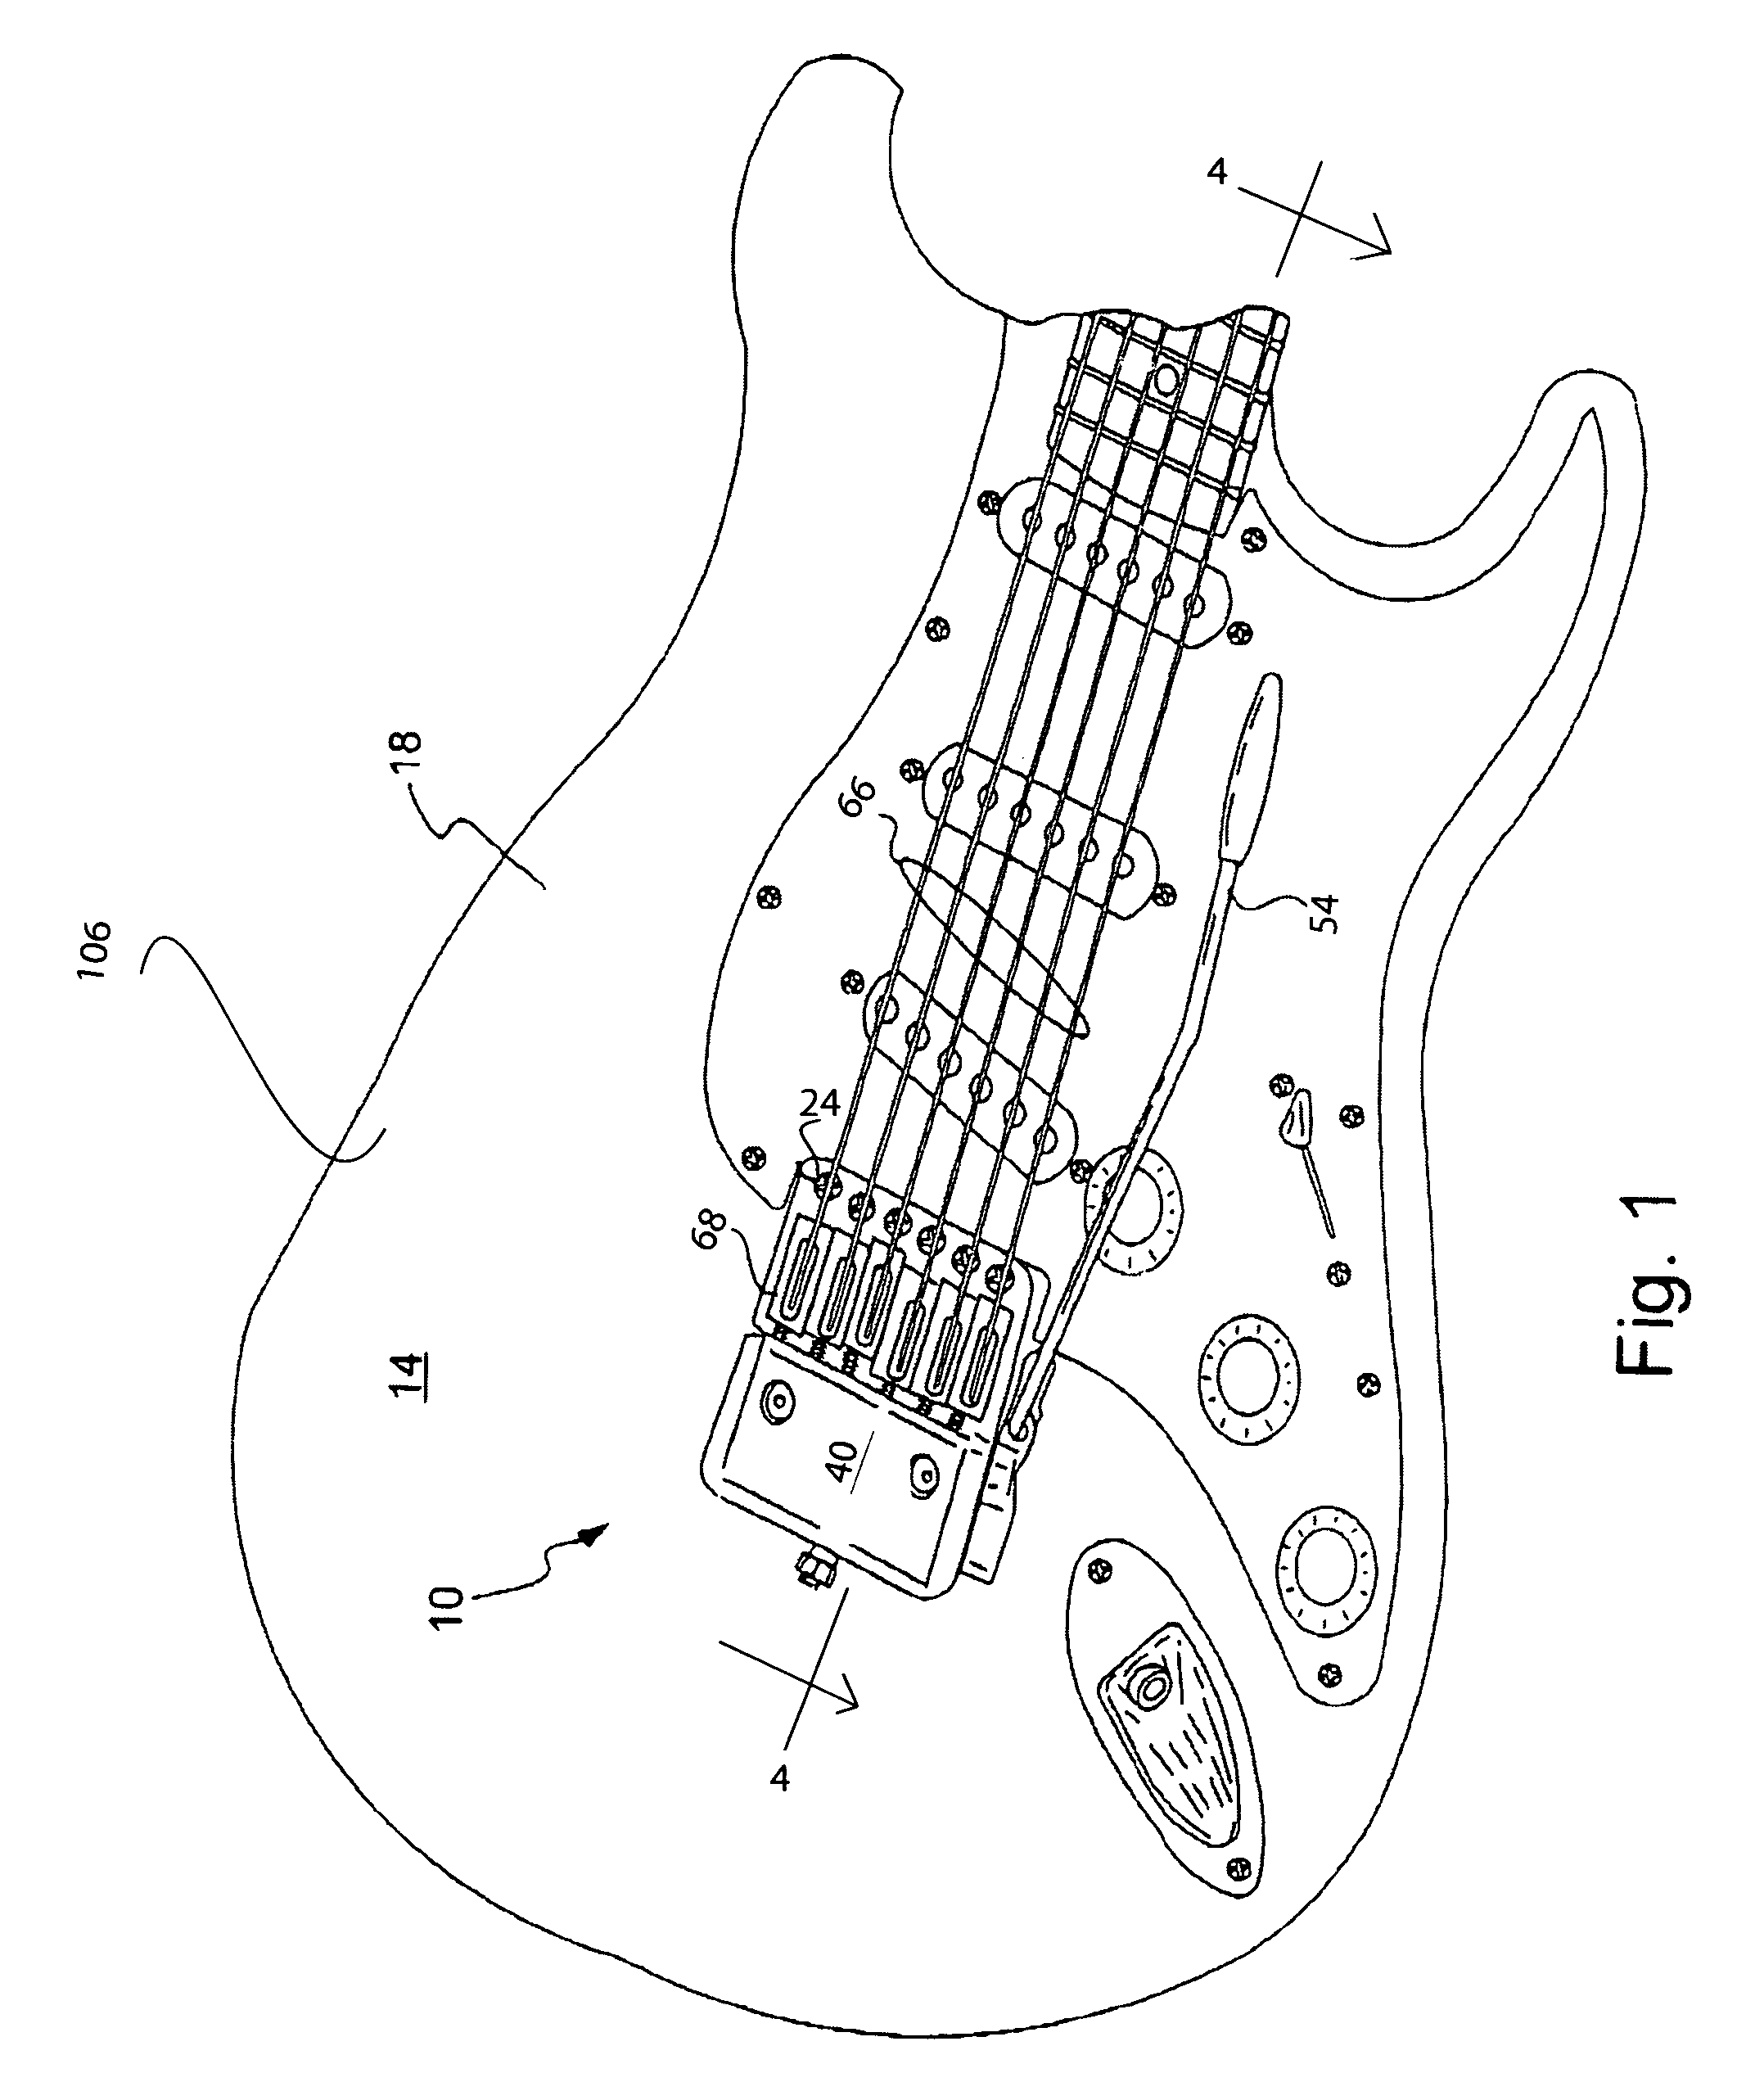 patent us7339102 cam activated tremolo bridge patents Strings On a Electric Guitar patent drawing